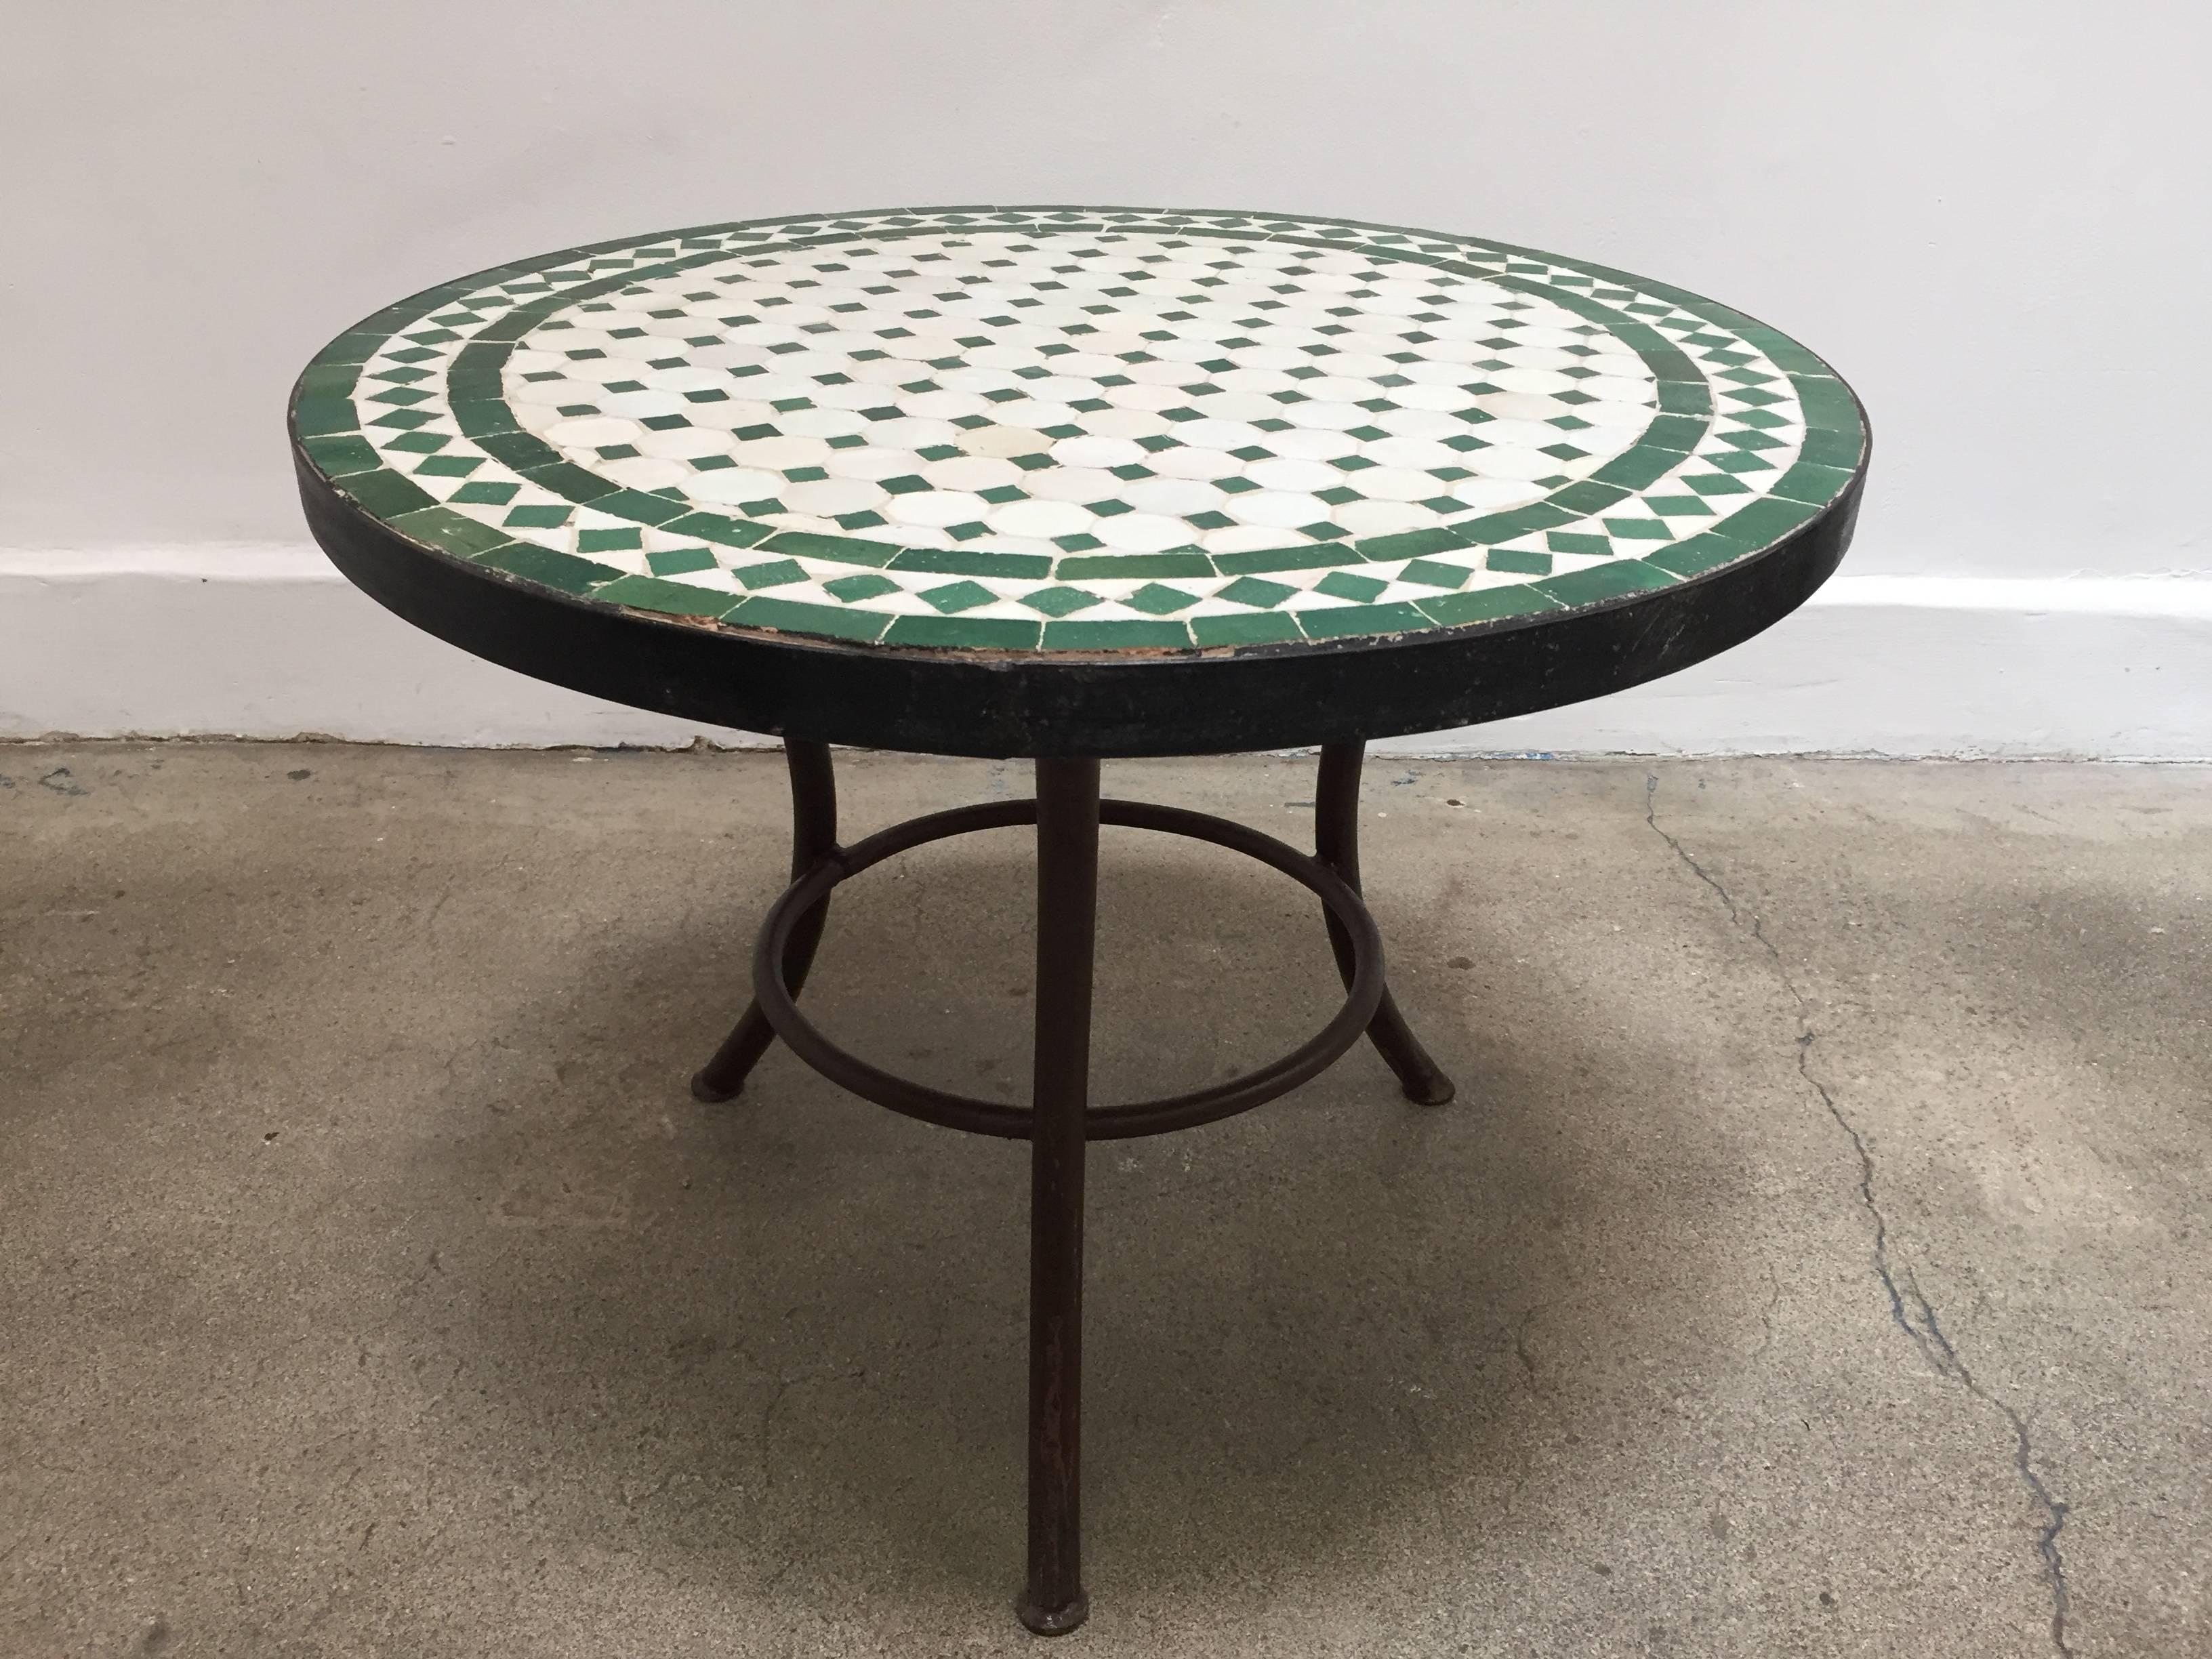 Moroccan Mosaic Tile Outdoor Side Table On Low Iron Base Green And White 2